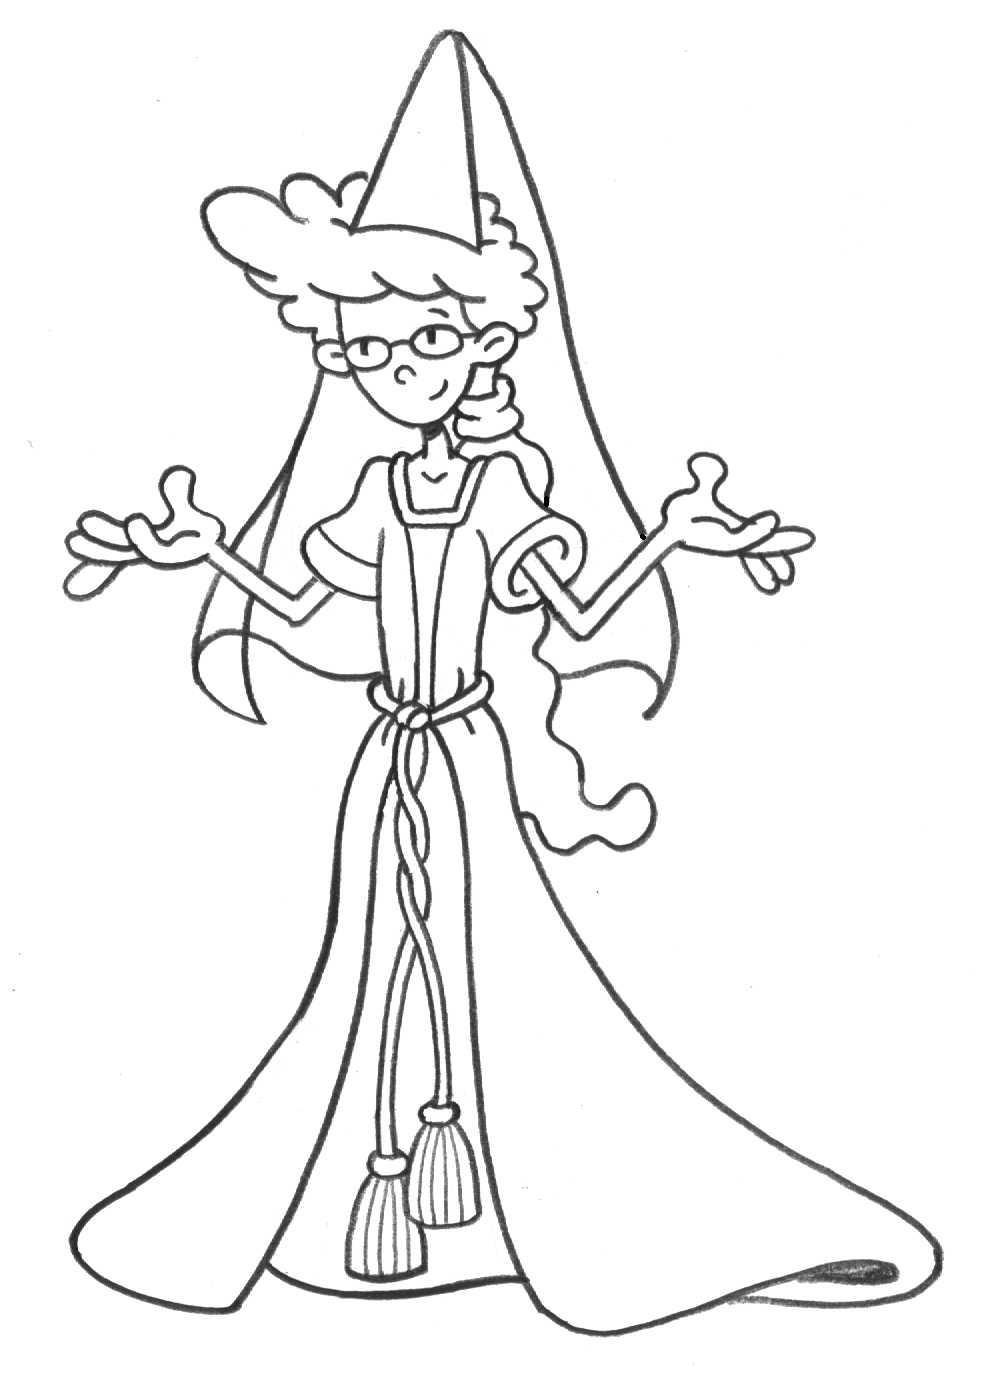 PEPPER ANN CHARACTER DESIGN  sc 1 st  warburtonlabs & warburtonlabs: PEPPER ANN CHARACTER DESIGN